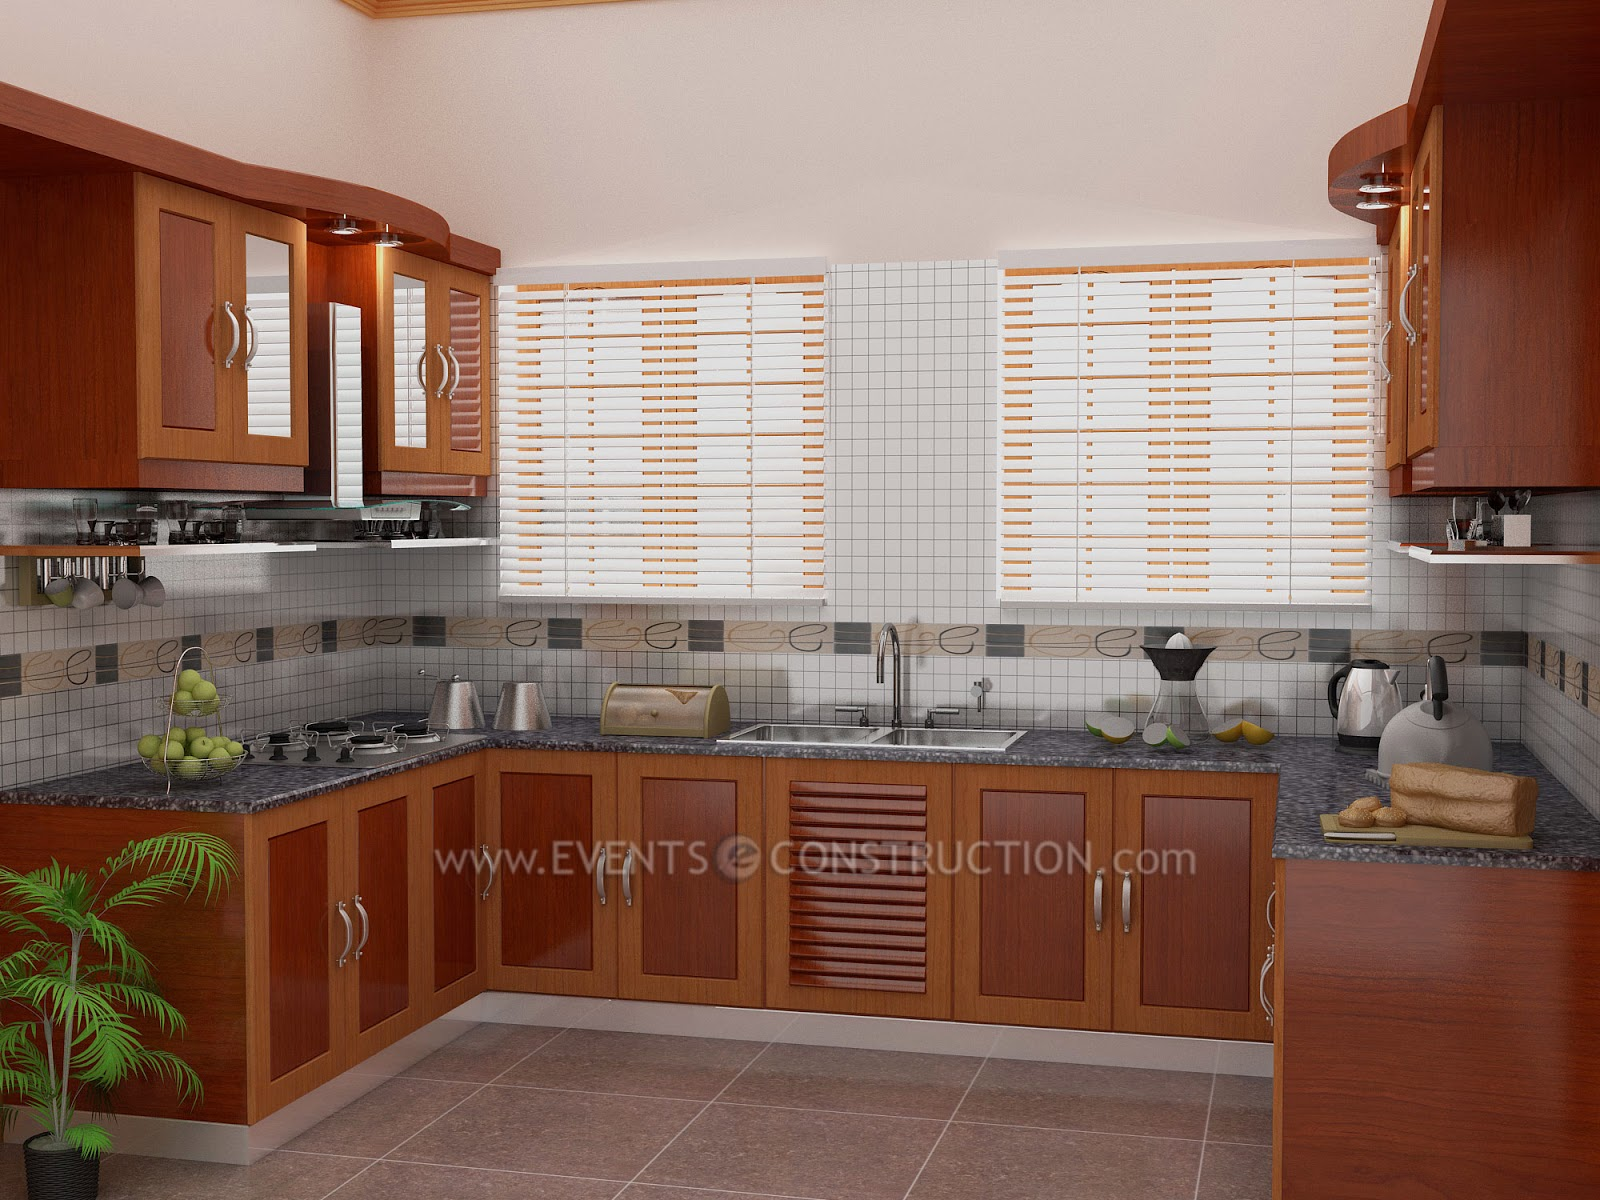 Kerala Style Kitchen Interior Designs Of Evens Construction Pvt Ltd Simple  Kerala Kitchen Design